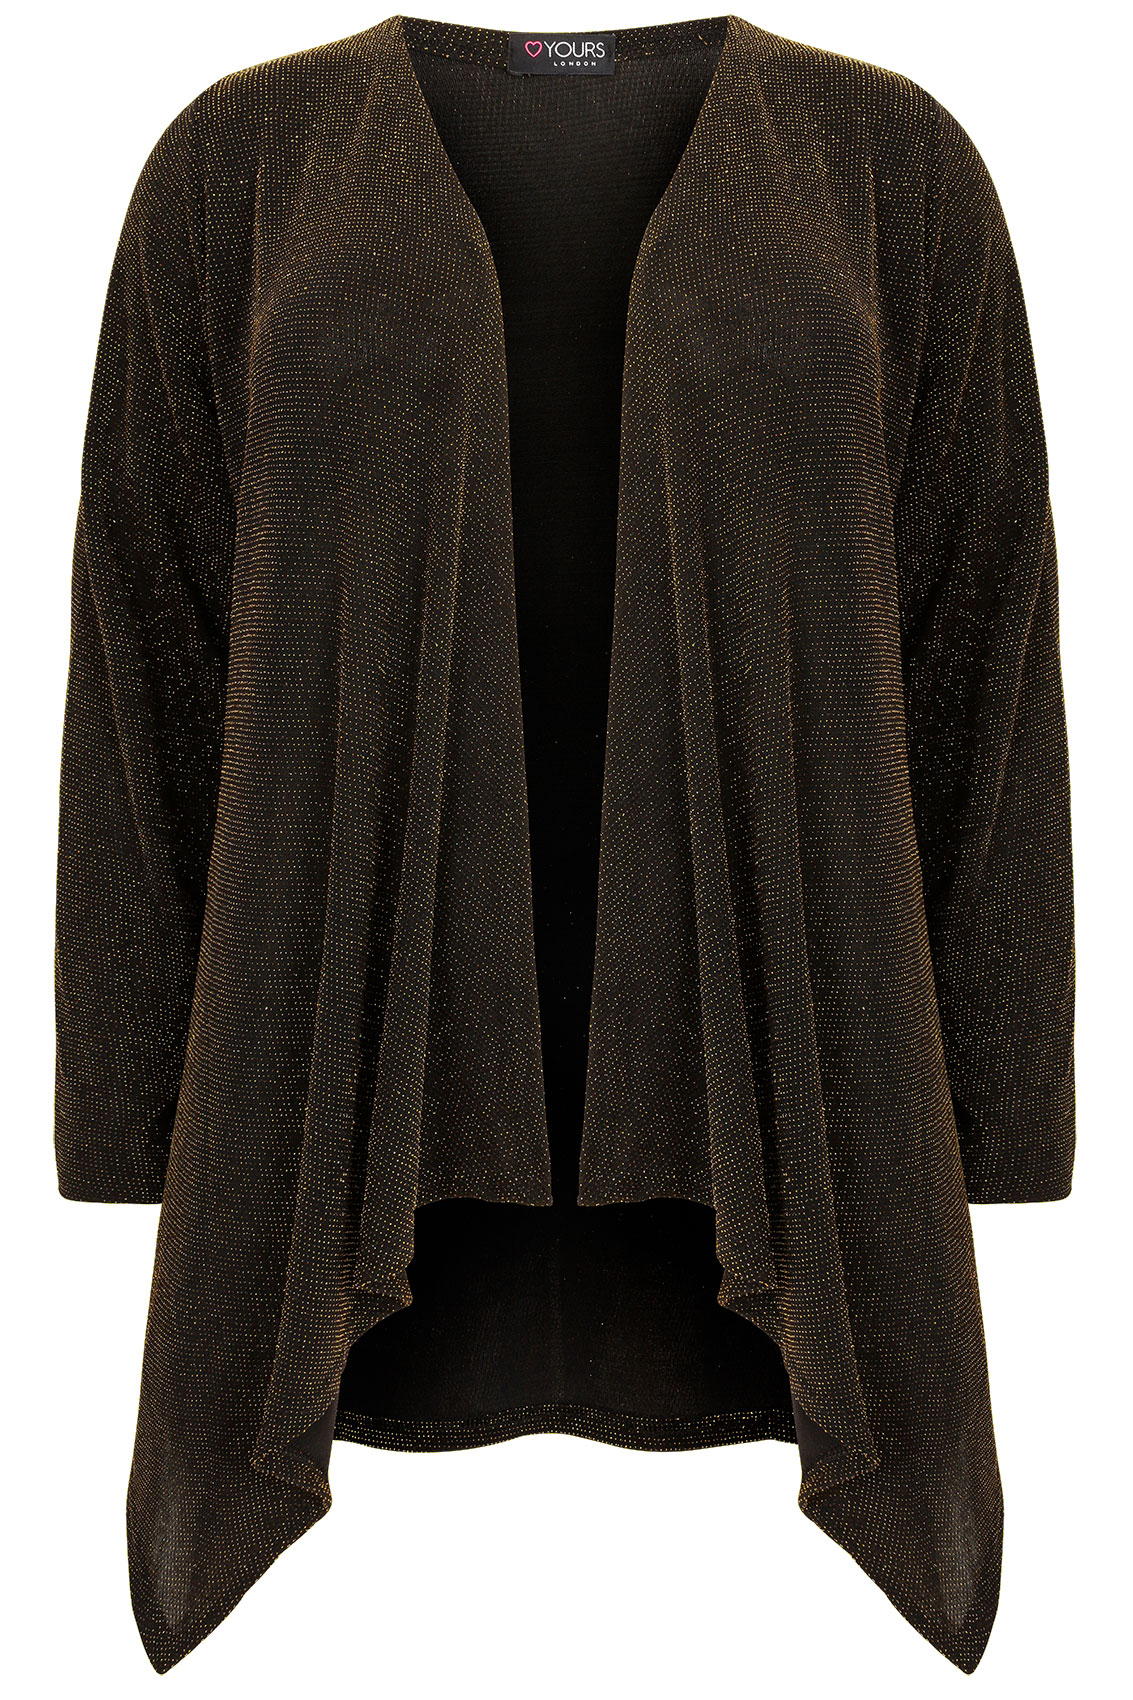 Black & Gold Sparkle Waterfall Cardigan, Plus size 16 to 32